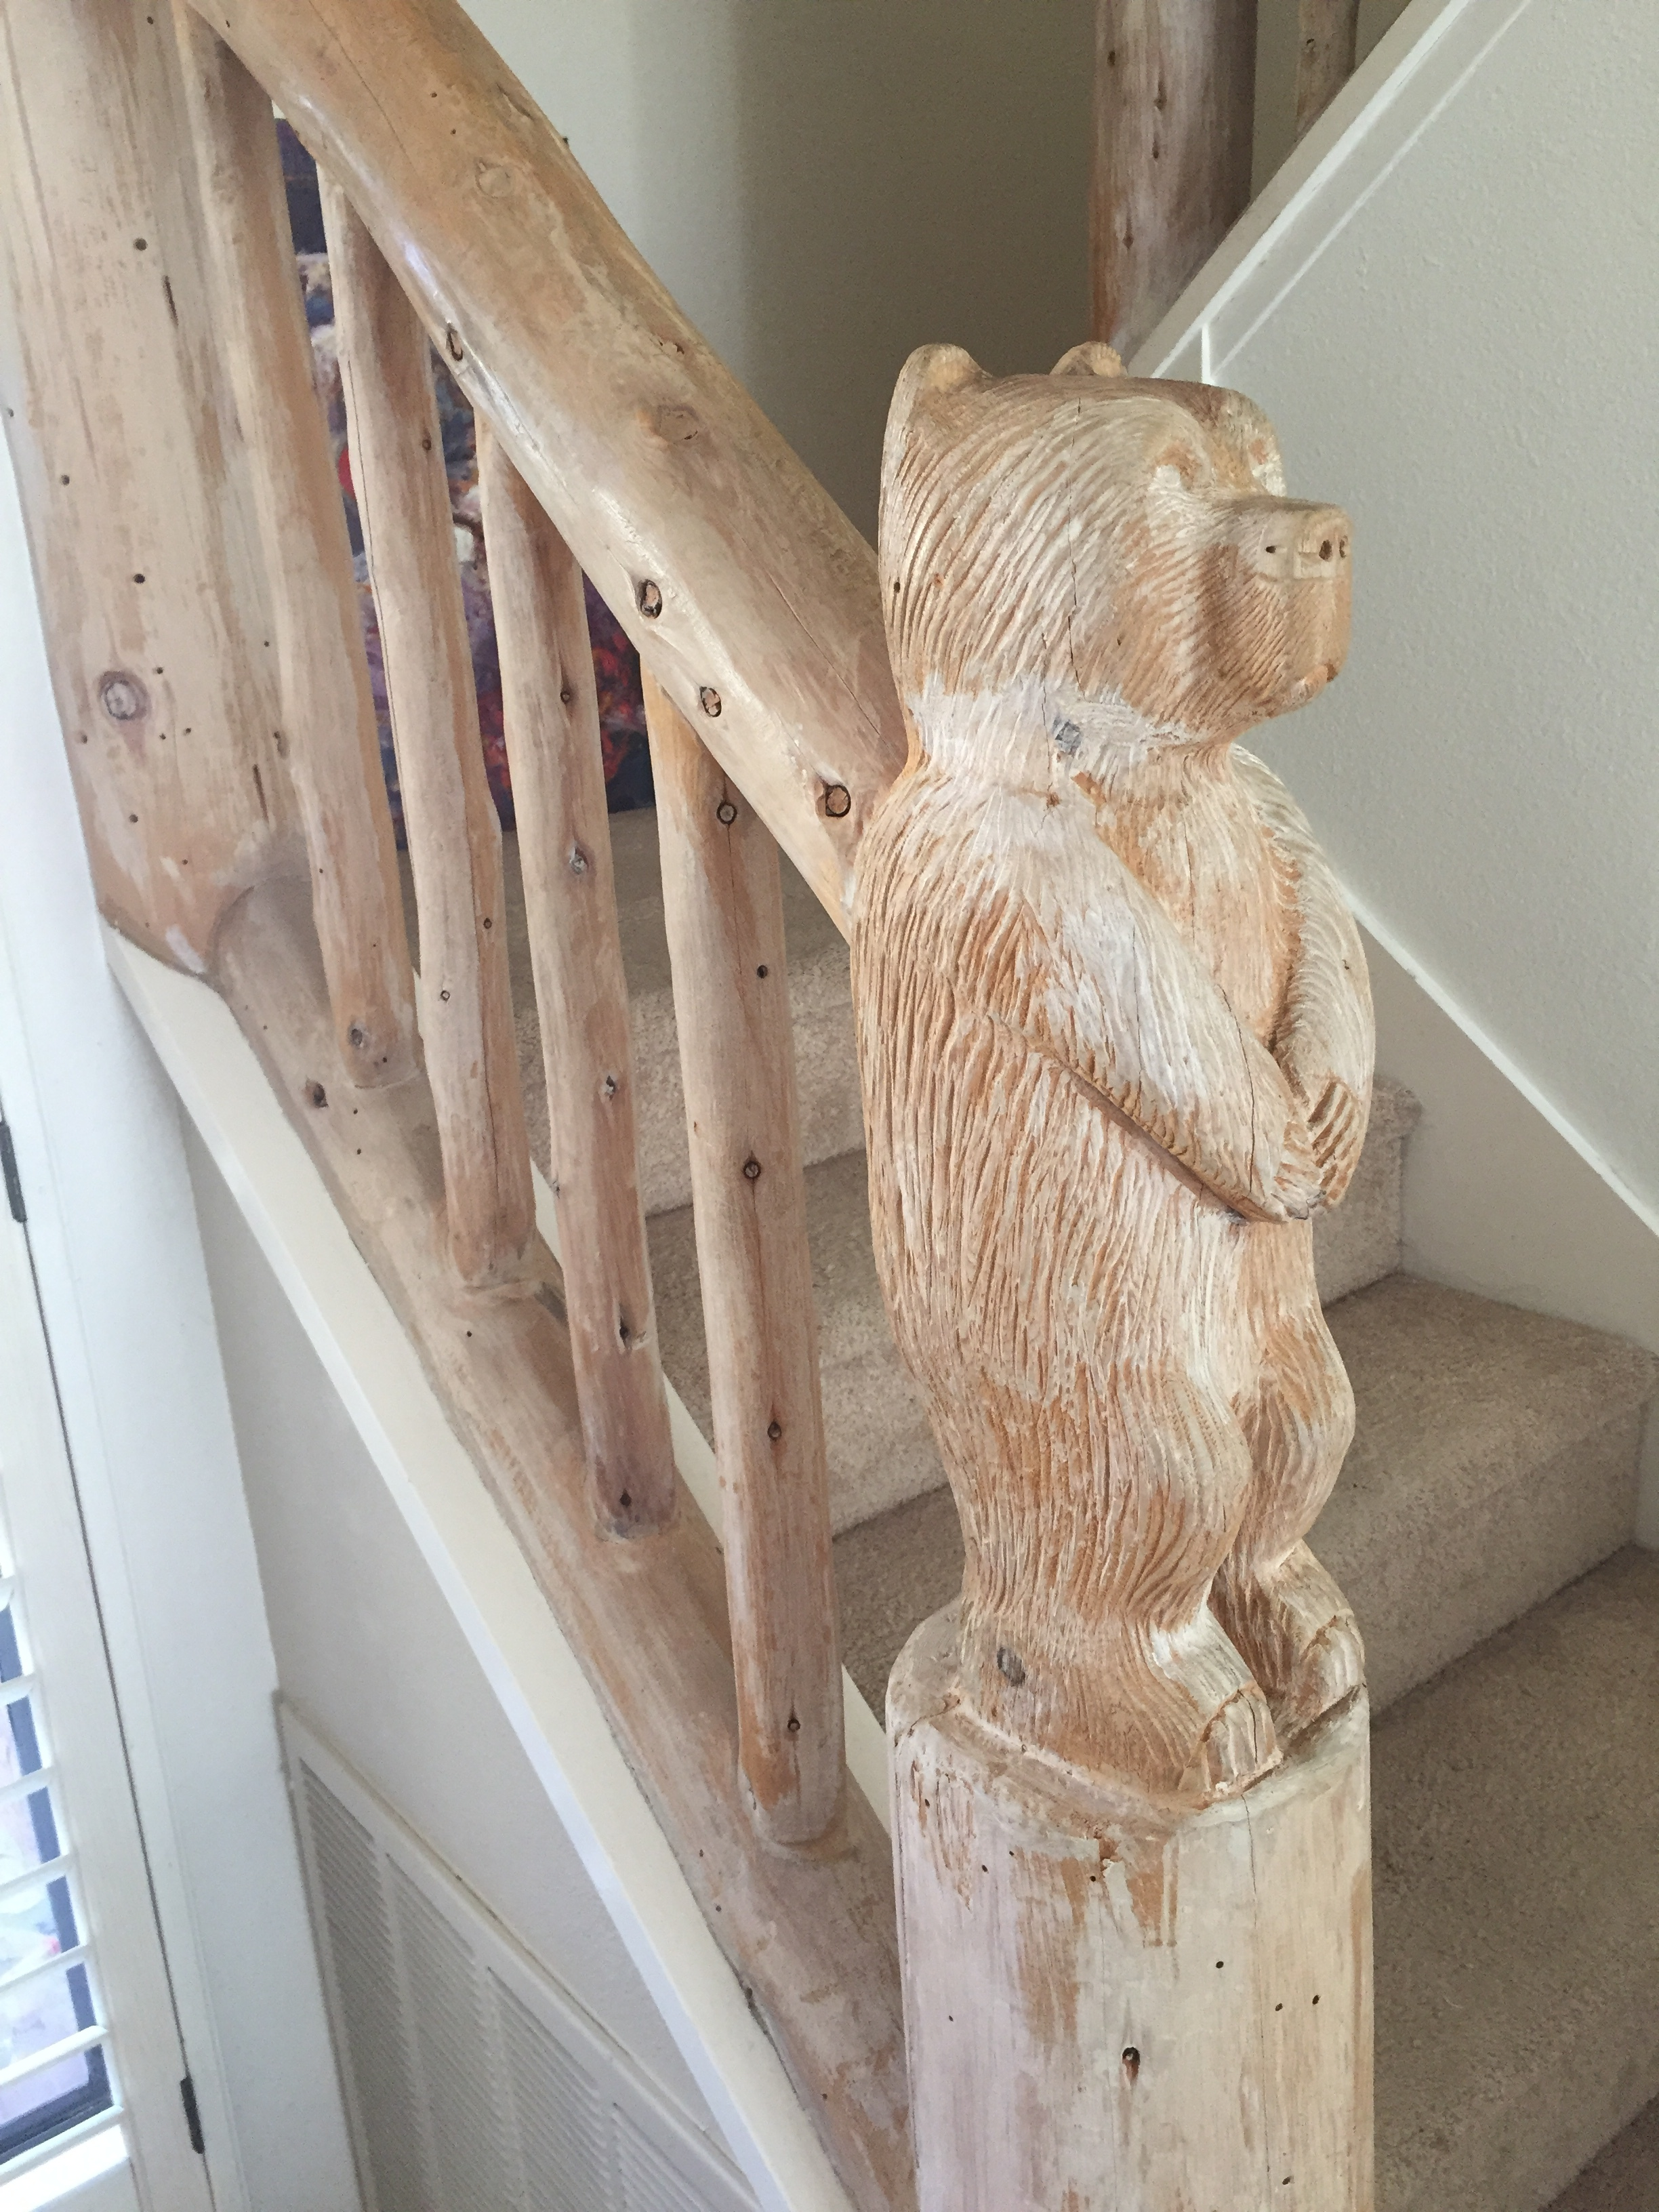 Our carved bear